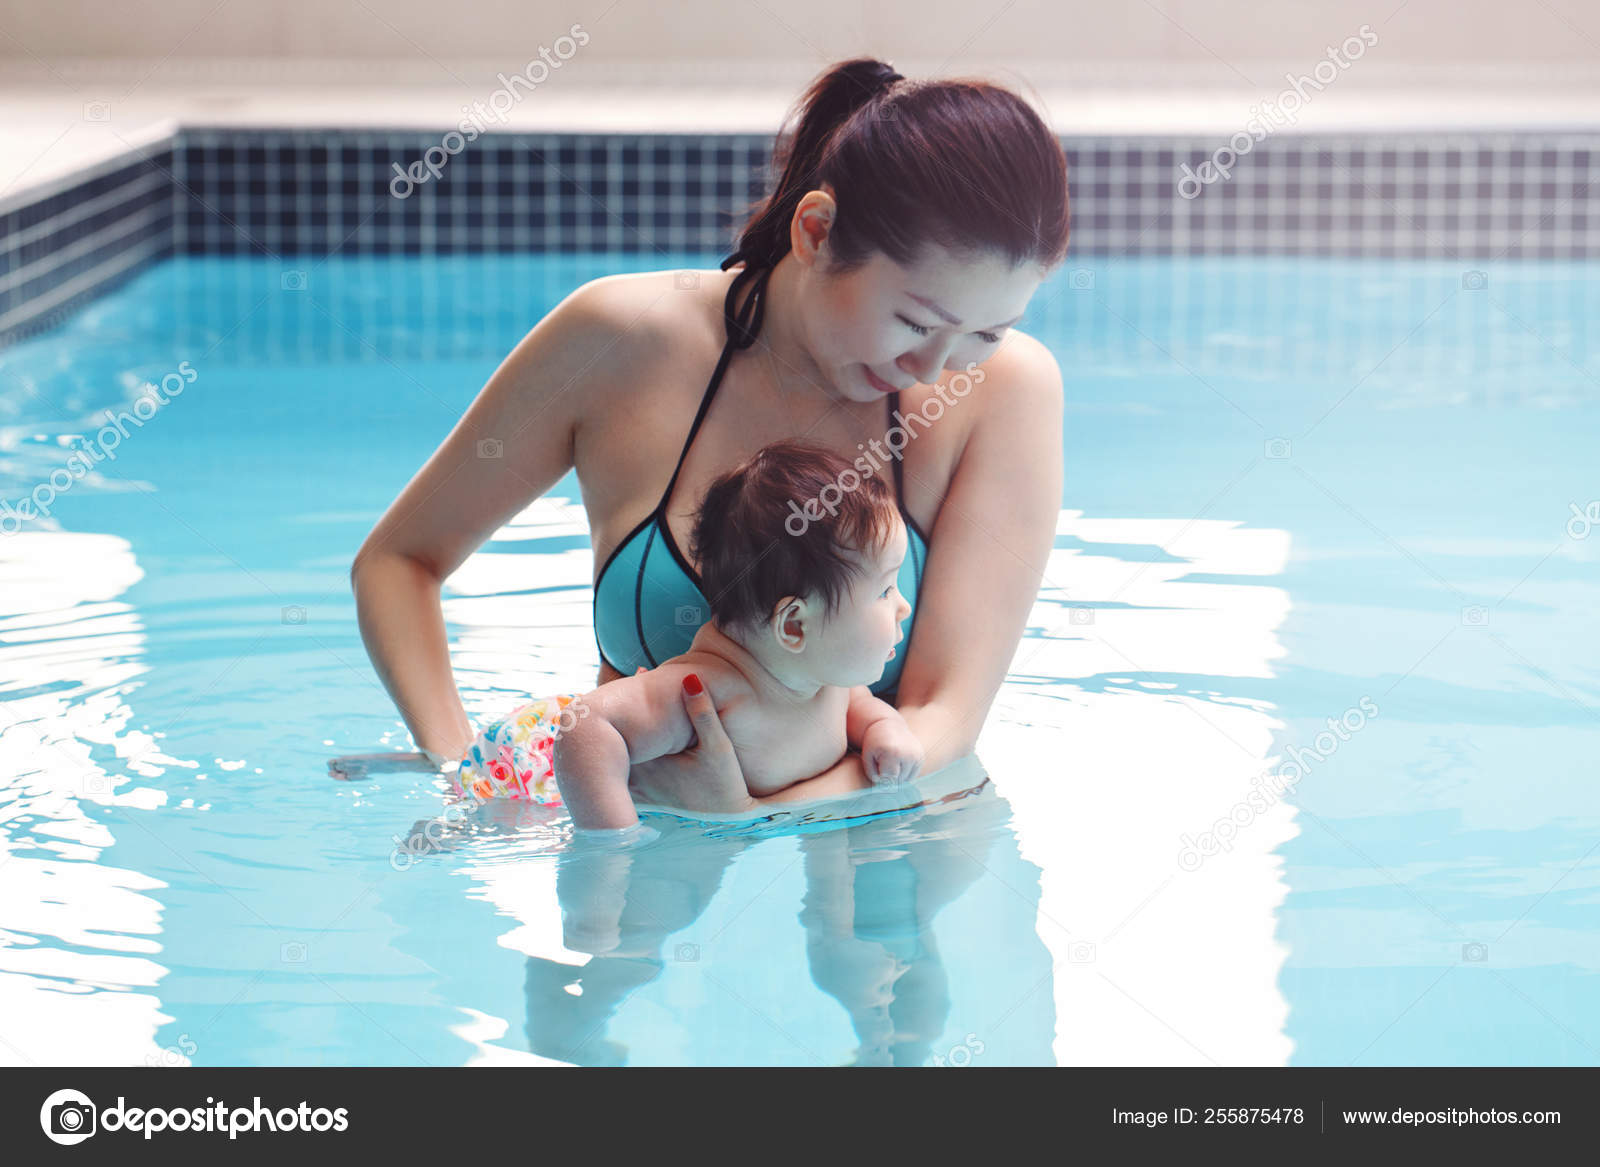 525fc606747 Mixed race asian mother training teaching her newborn baby to float in swimming  pool. Baby diving in water. Healthy active lifestyle.